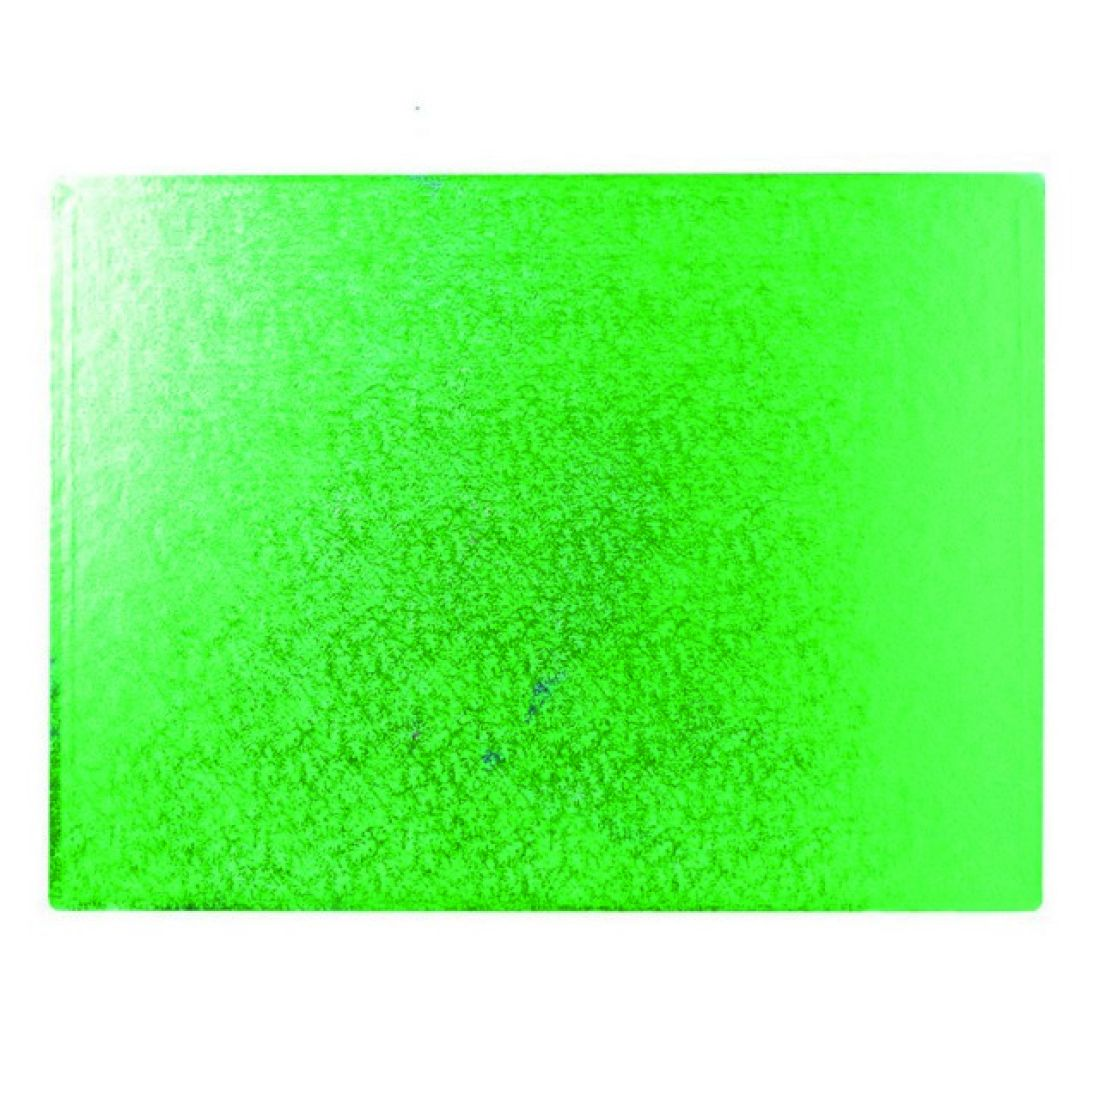 Green 3mm Thick Hardboards Oblong 14x10 Inch Squires